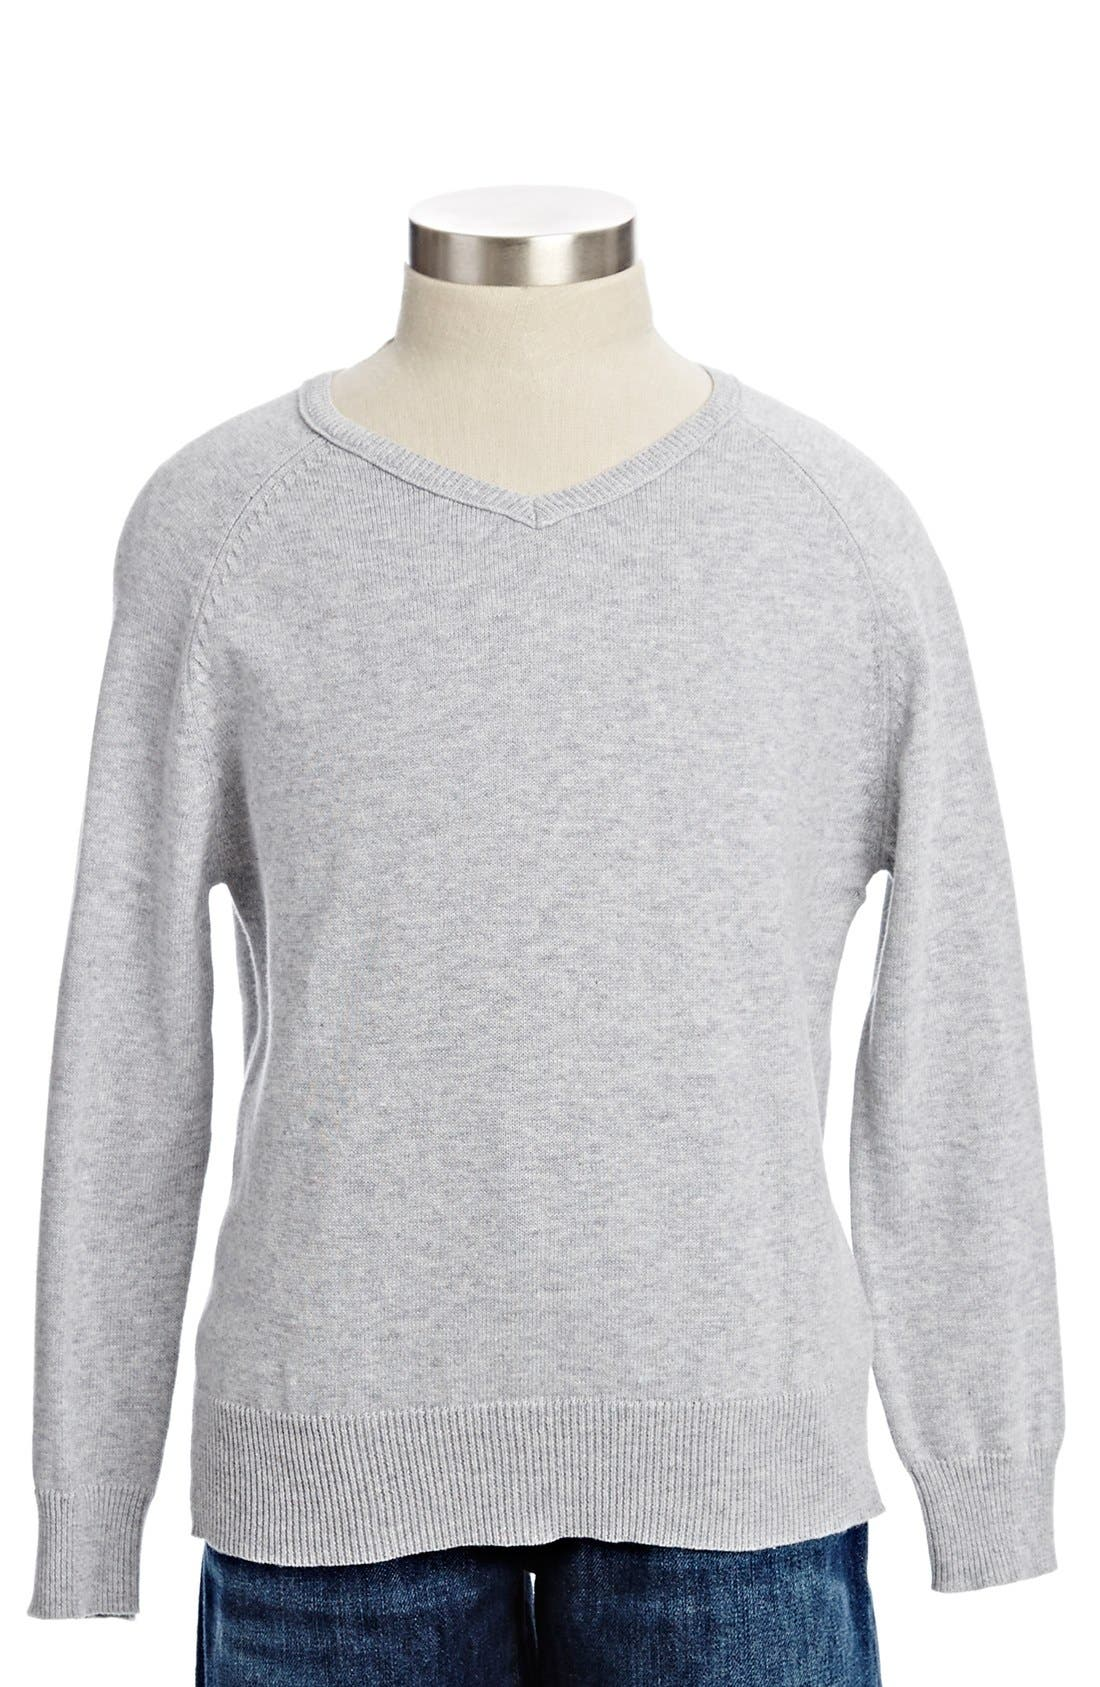 Alternate Image 1 Selected - Peek 'Grant' V-Neck Sweater (Toddler Boys, Little Boys & Big Boys)